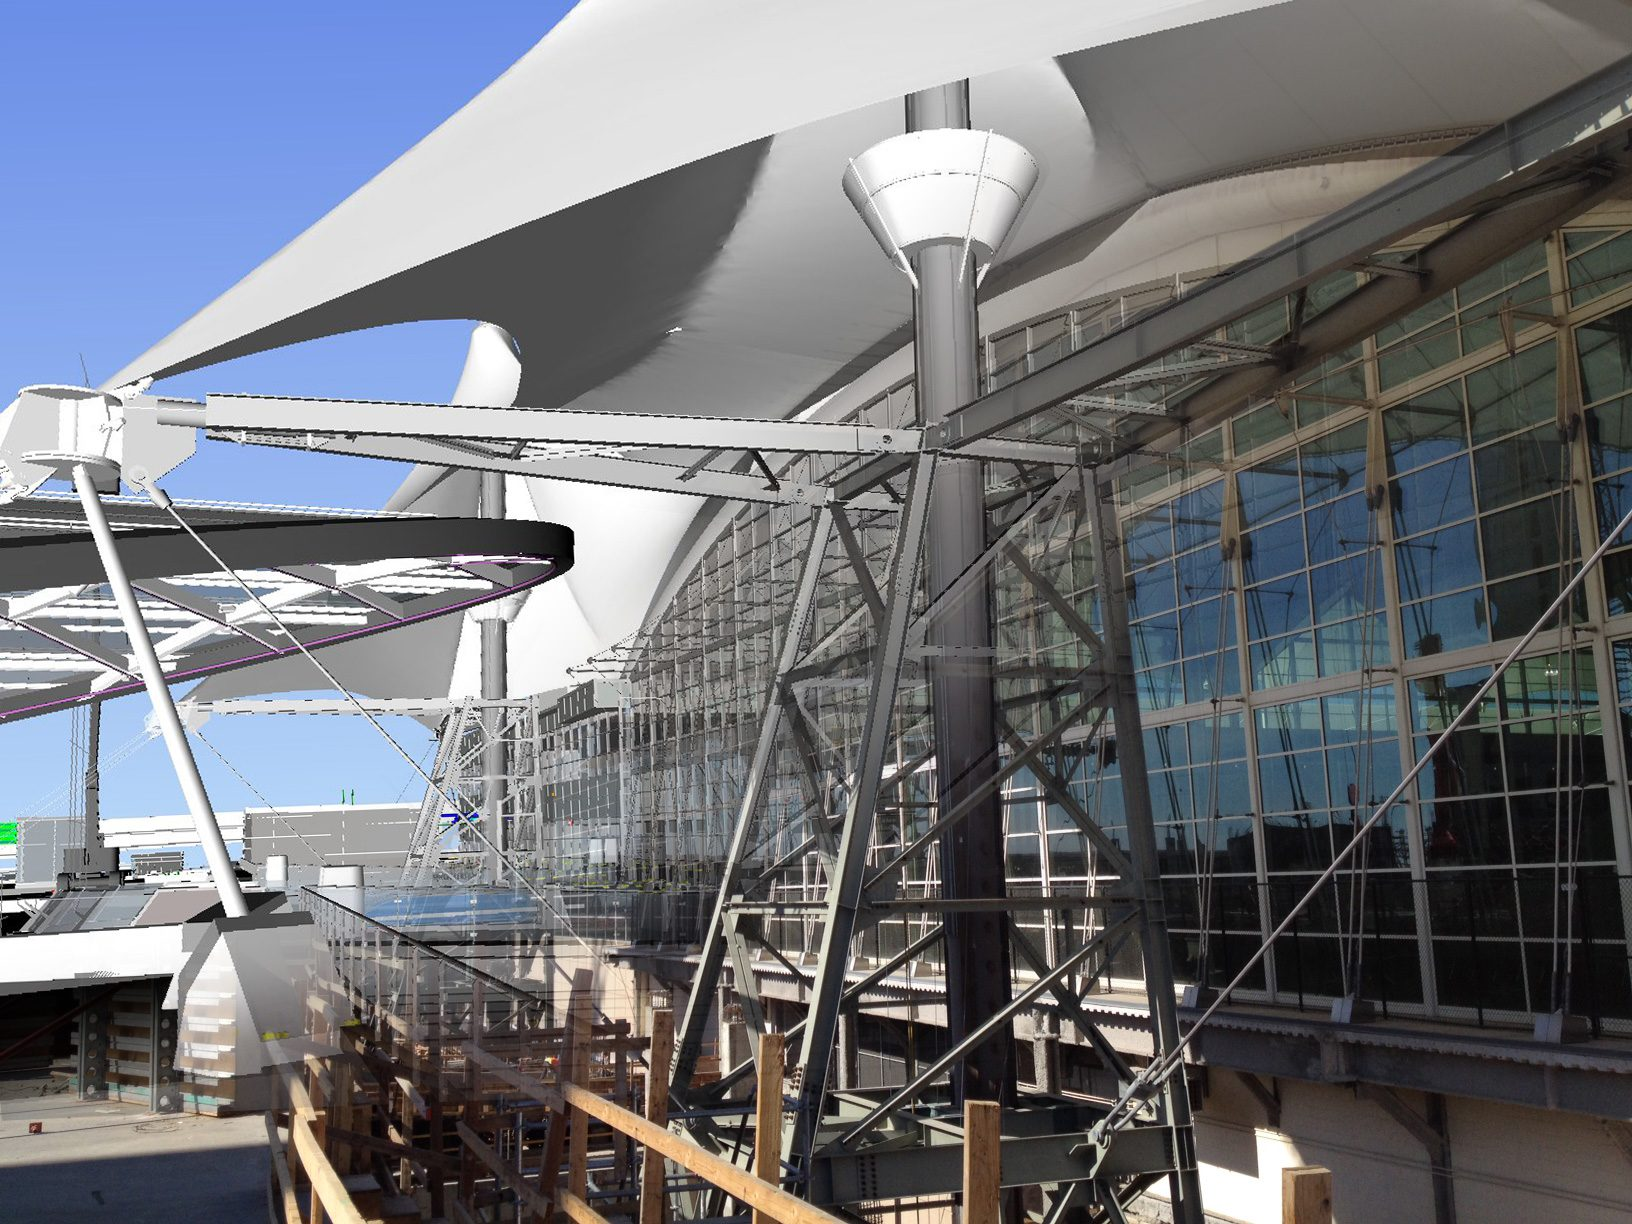 Maintaining the anchoring for the white tension fabric roof provided a challenge in the early planning and design stages. This photo/model composite shows the detail of the temporary grounding tower, and a window into the final support structure at this dramatic entry point to the main terminal. Credit: William Lineberry, Design Technology Manager, HNTB.